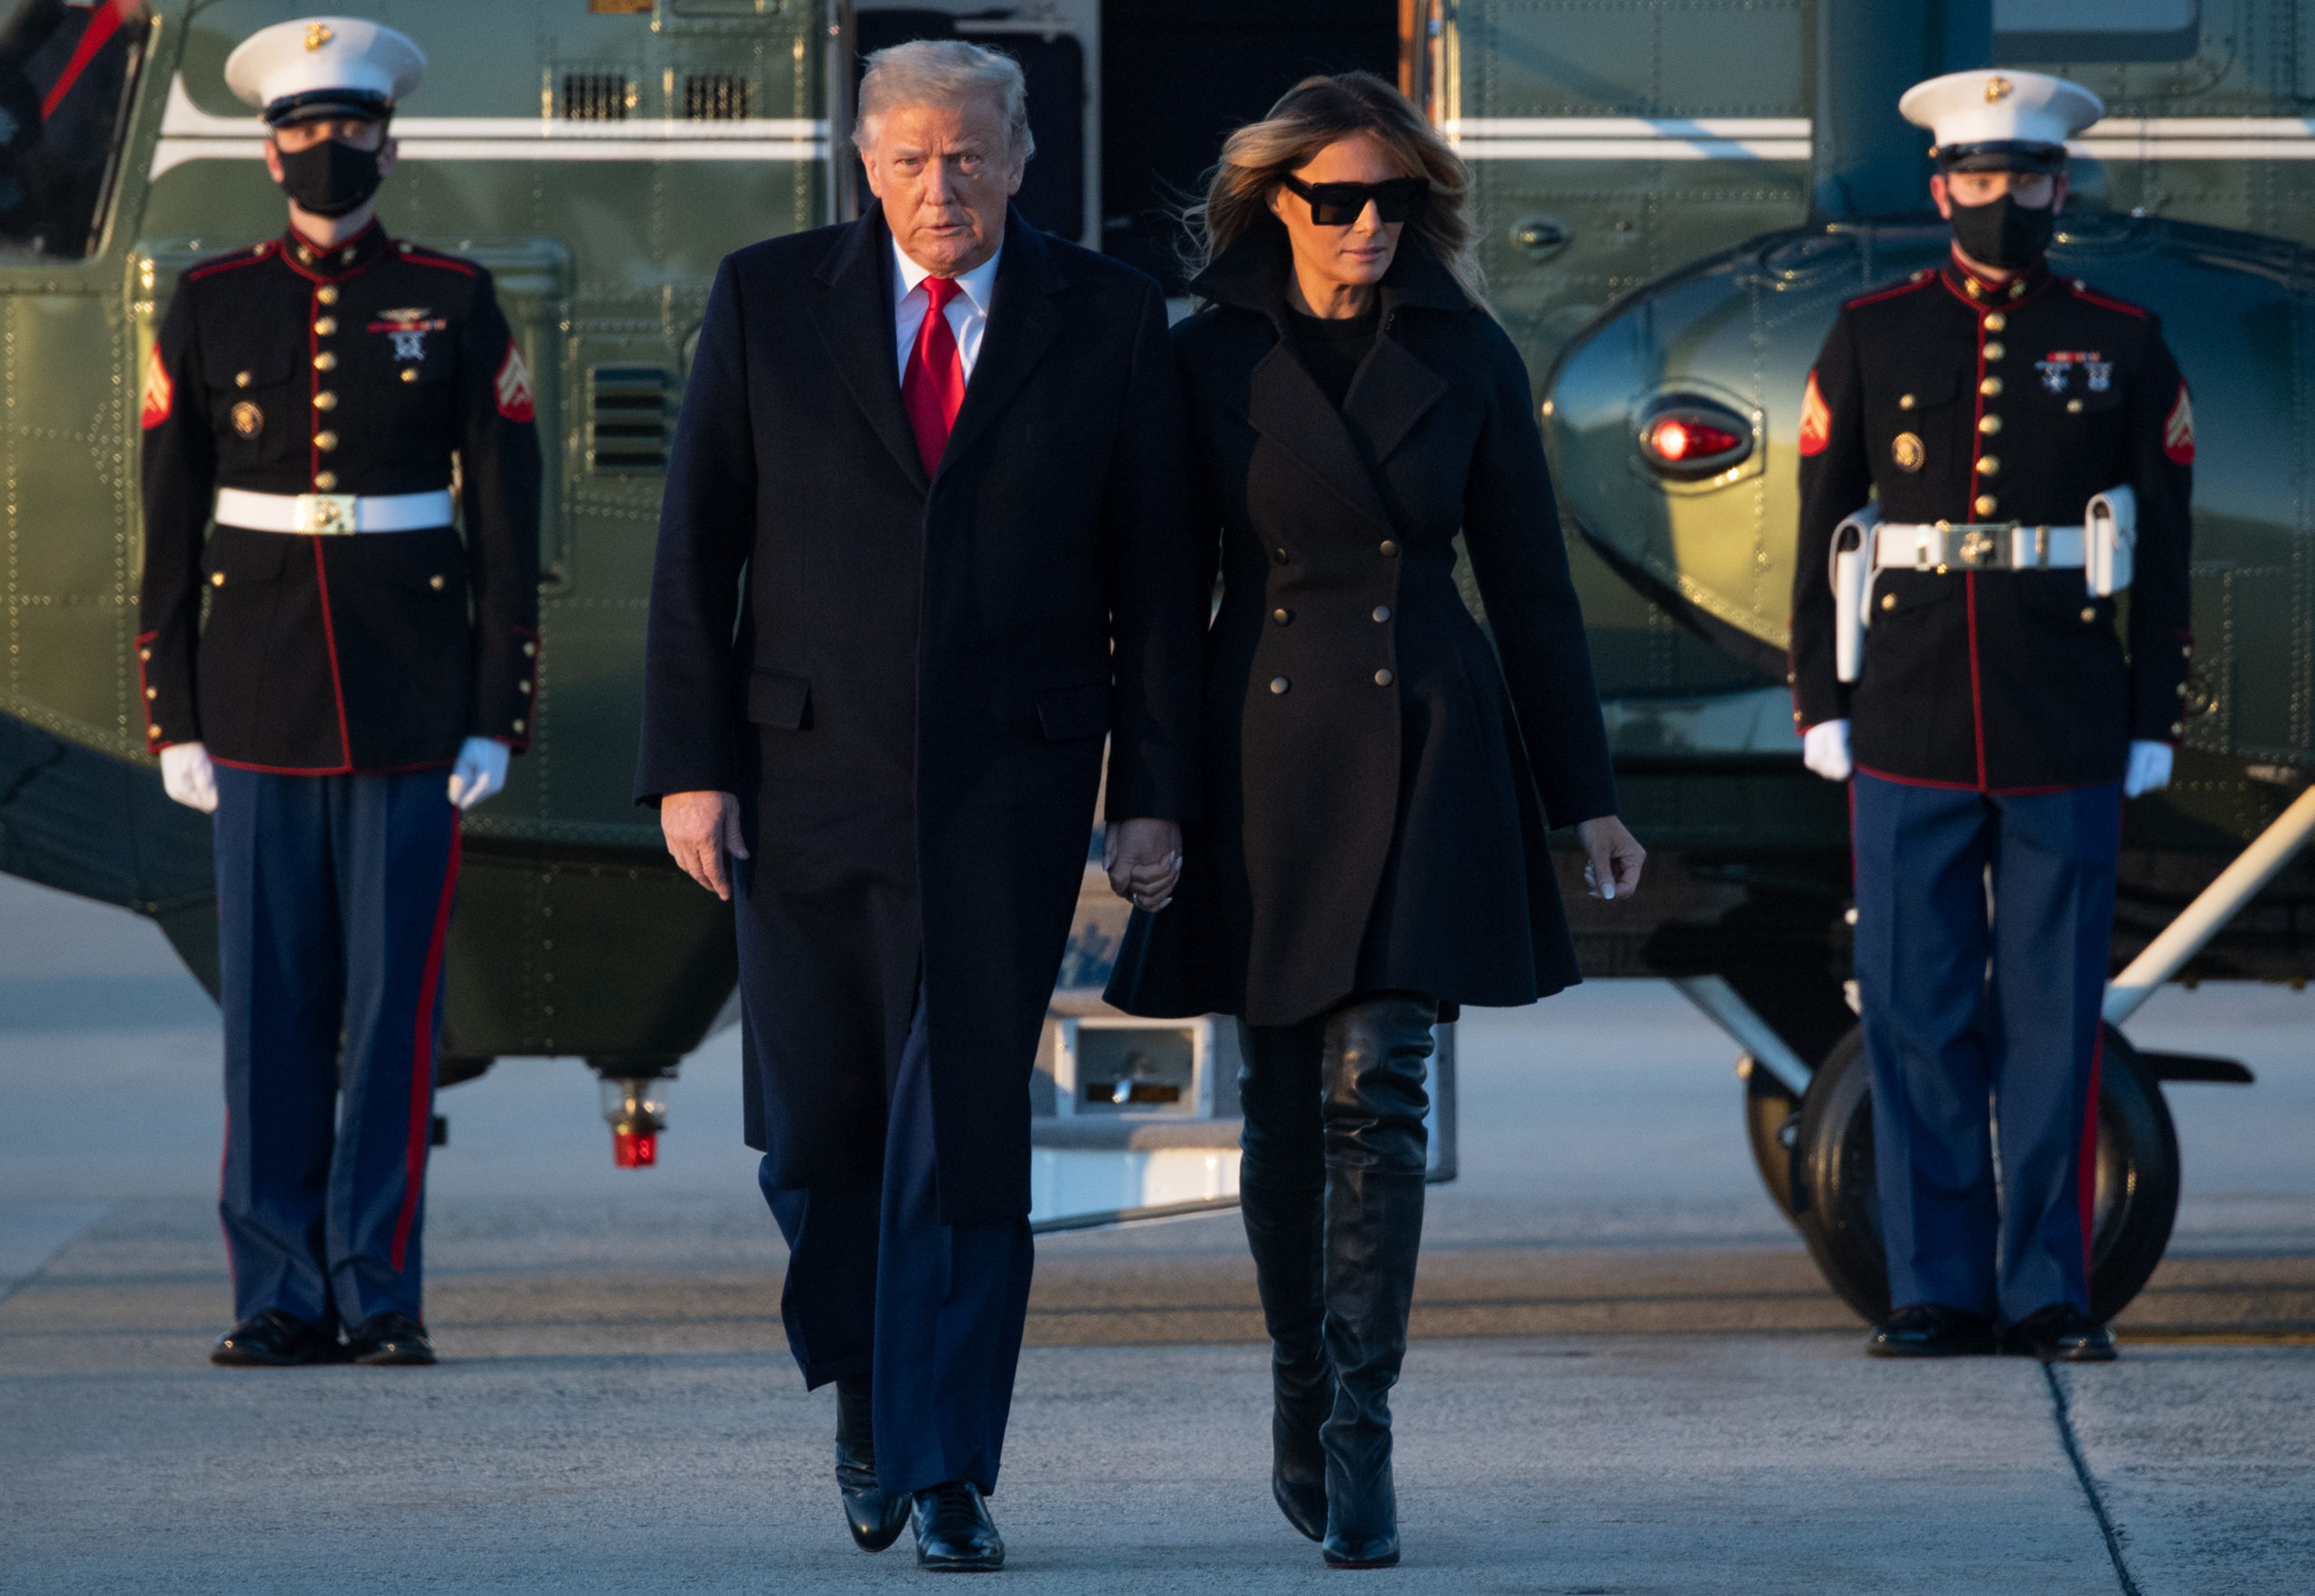 US President Donald Trump and First Lady Melania Trump step off Marine One on their way to board Air Force One prior to departure from Joint Base Andrews in Maryland, December 23, 2020, as they travel to Mar-a-lago for Christmas and New Year's. (Photo by SAUL LOEB/AFP via Getty Images)